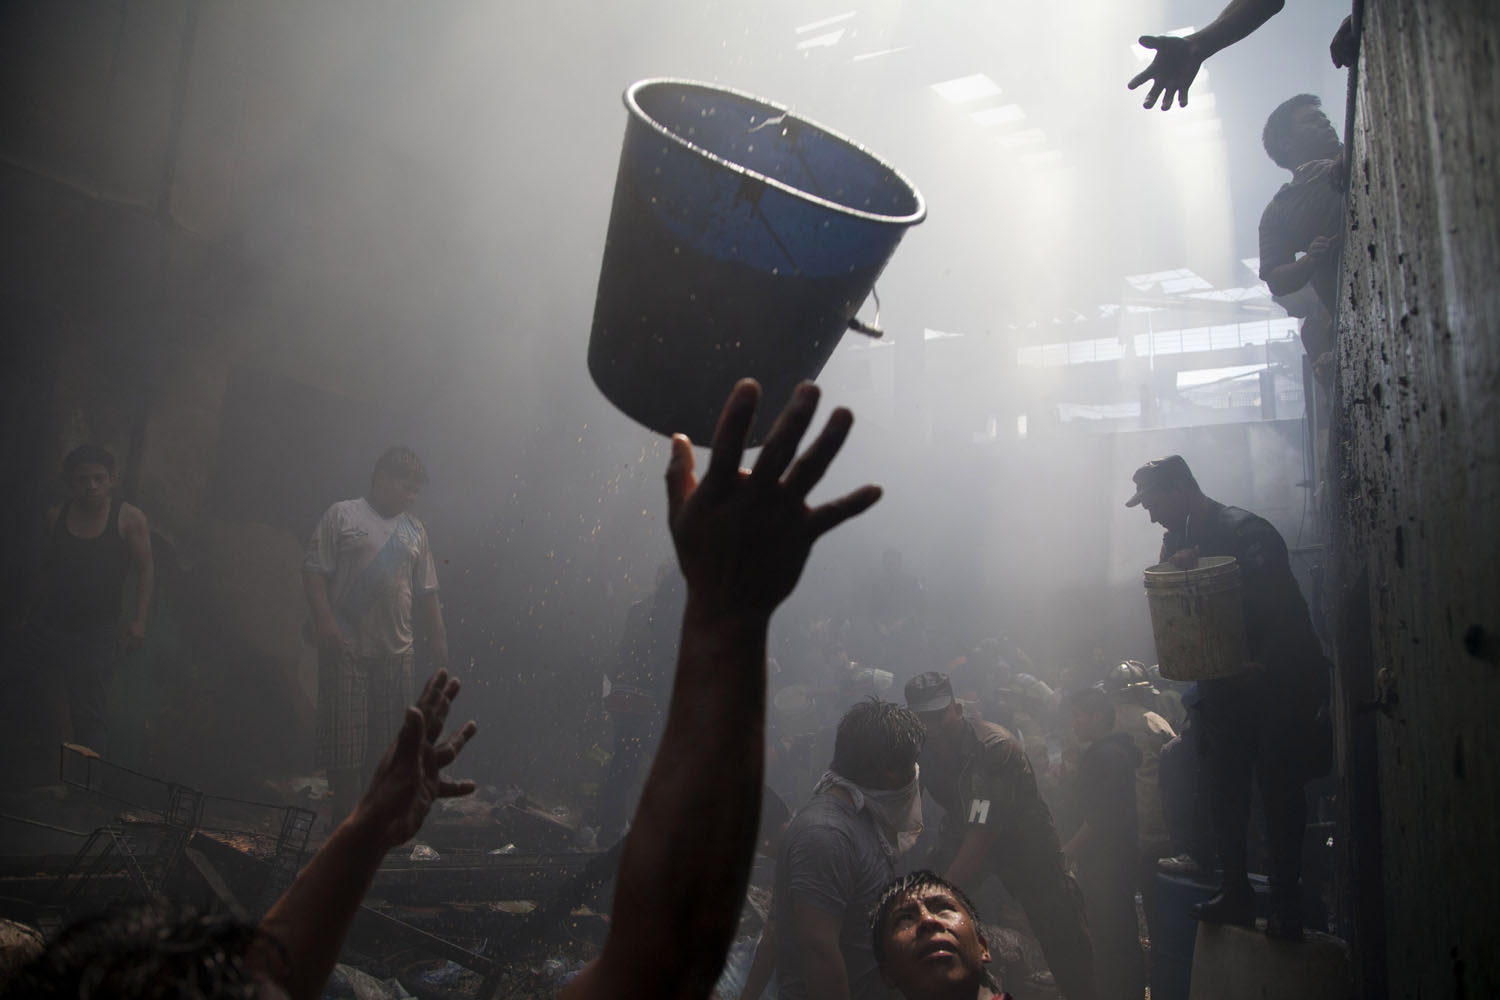 Mar. 25, 2014. Hands reach out to receive a bucketful of water as vendors, police and firemen work together to put out a fire at La Terminal, the largest and most important market in Guatemala City.